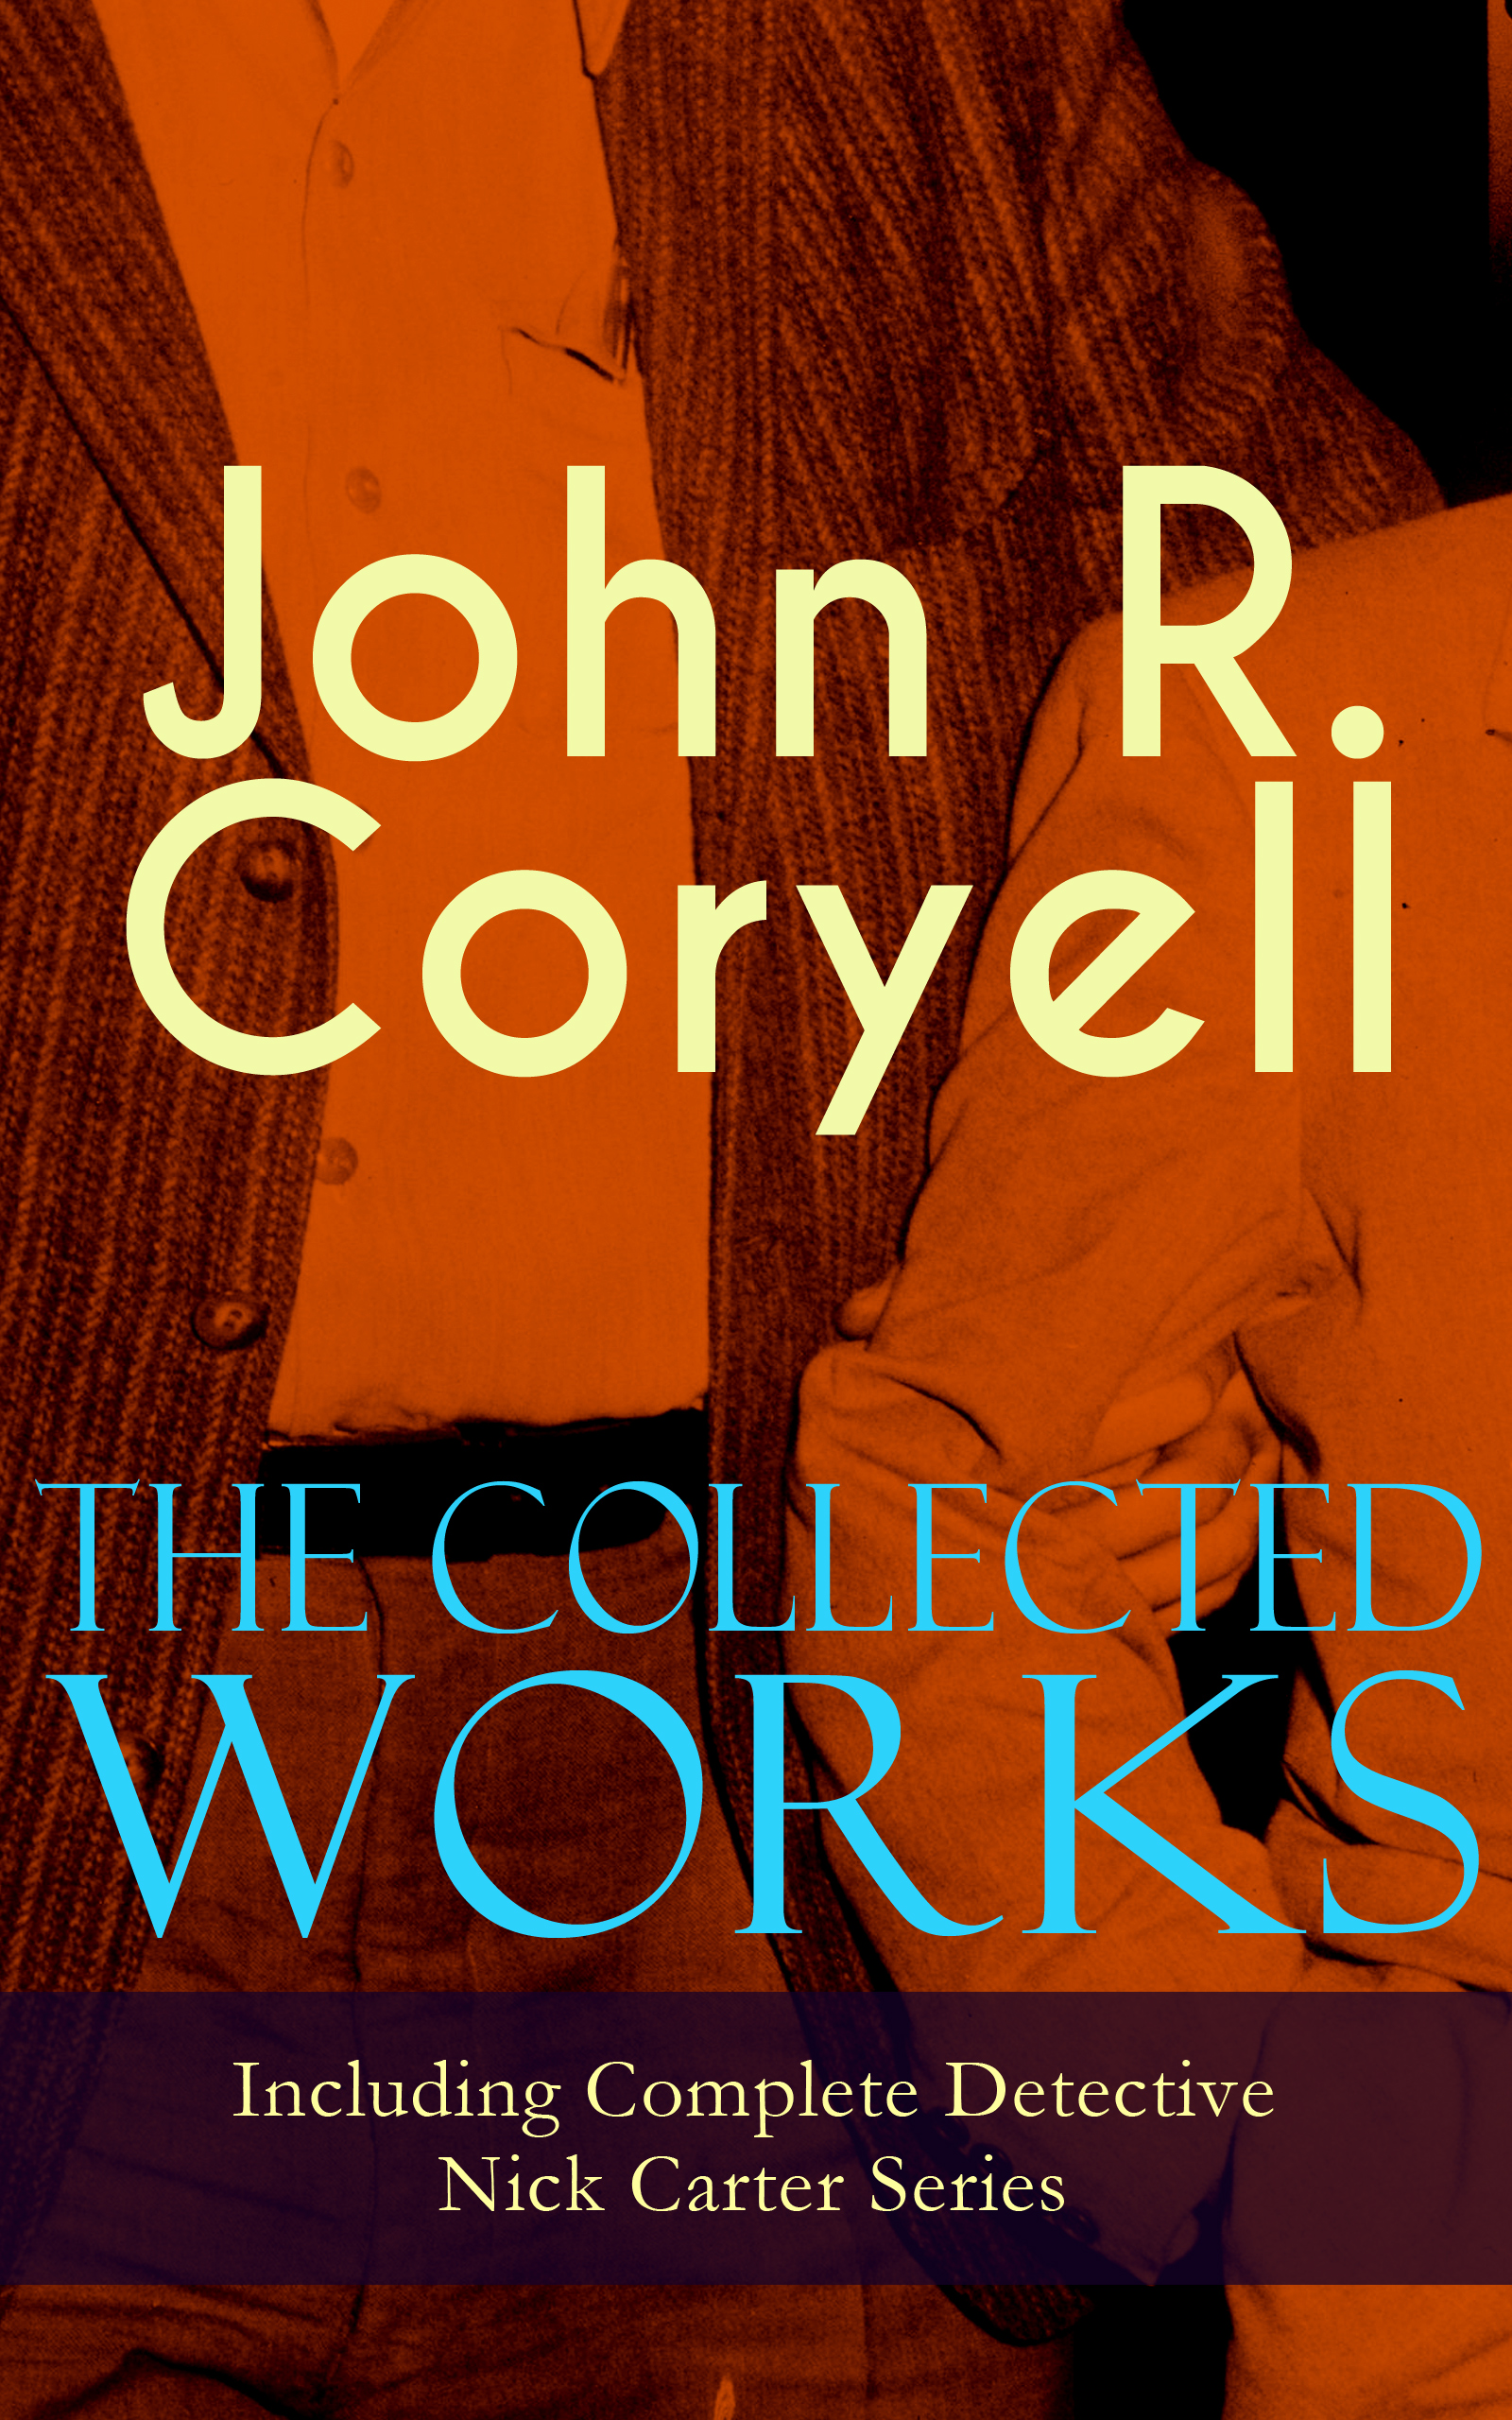 цена на John R. Coryell The Collected Works of John R. Coryell (Including Complete Detective Nick Carter Series)